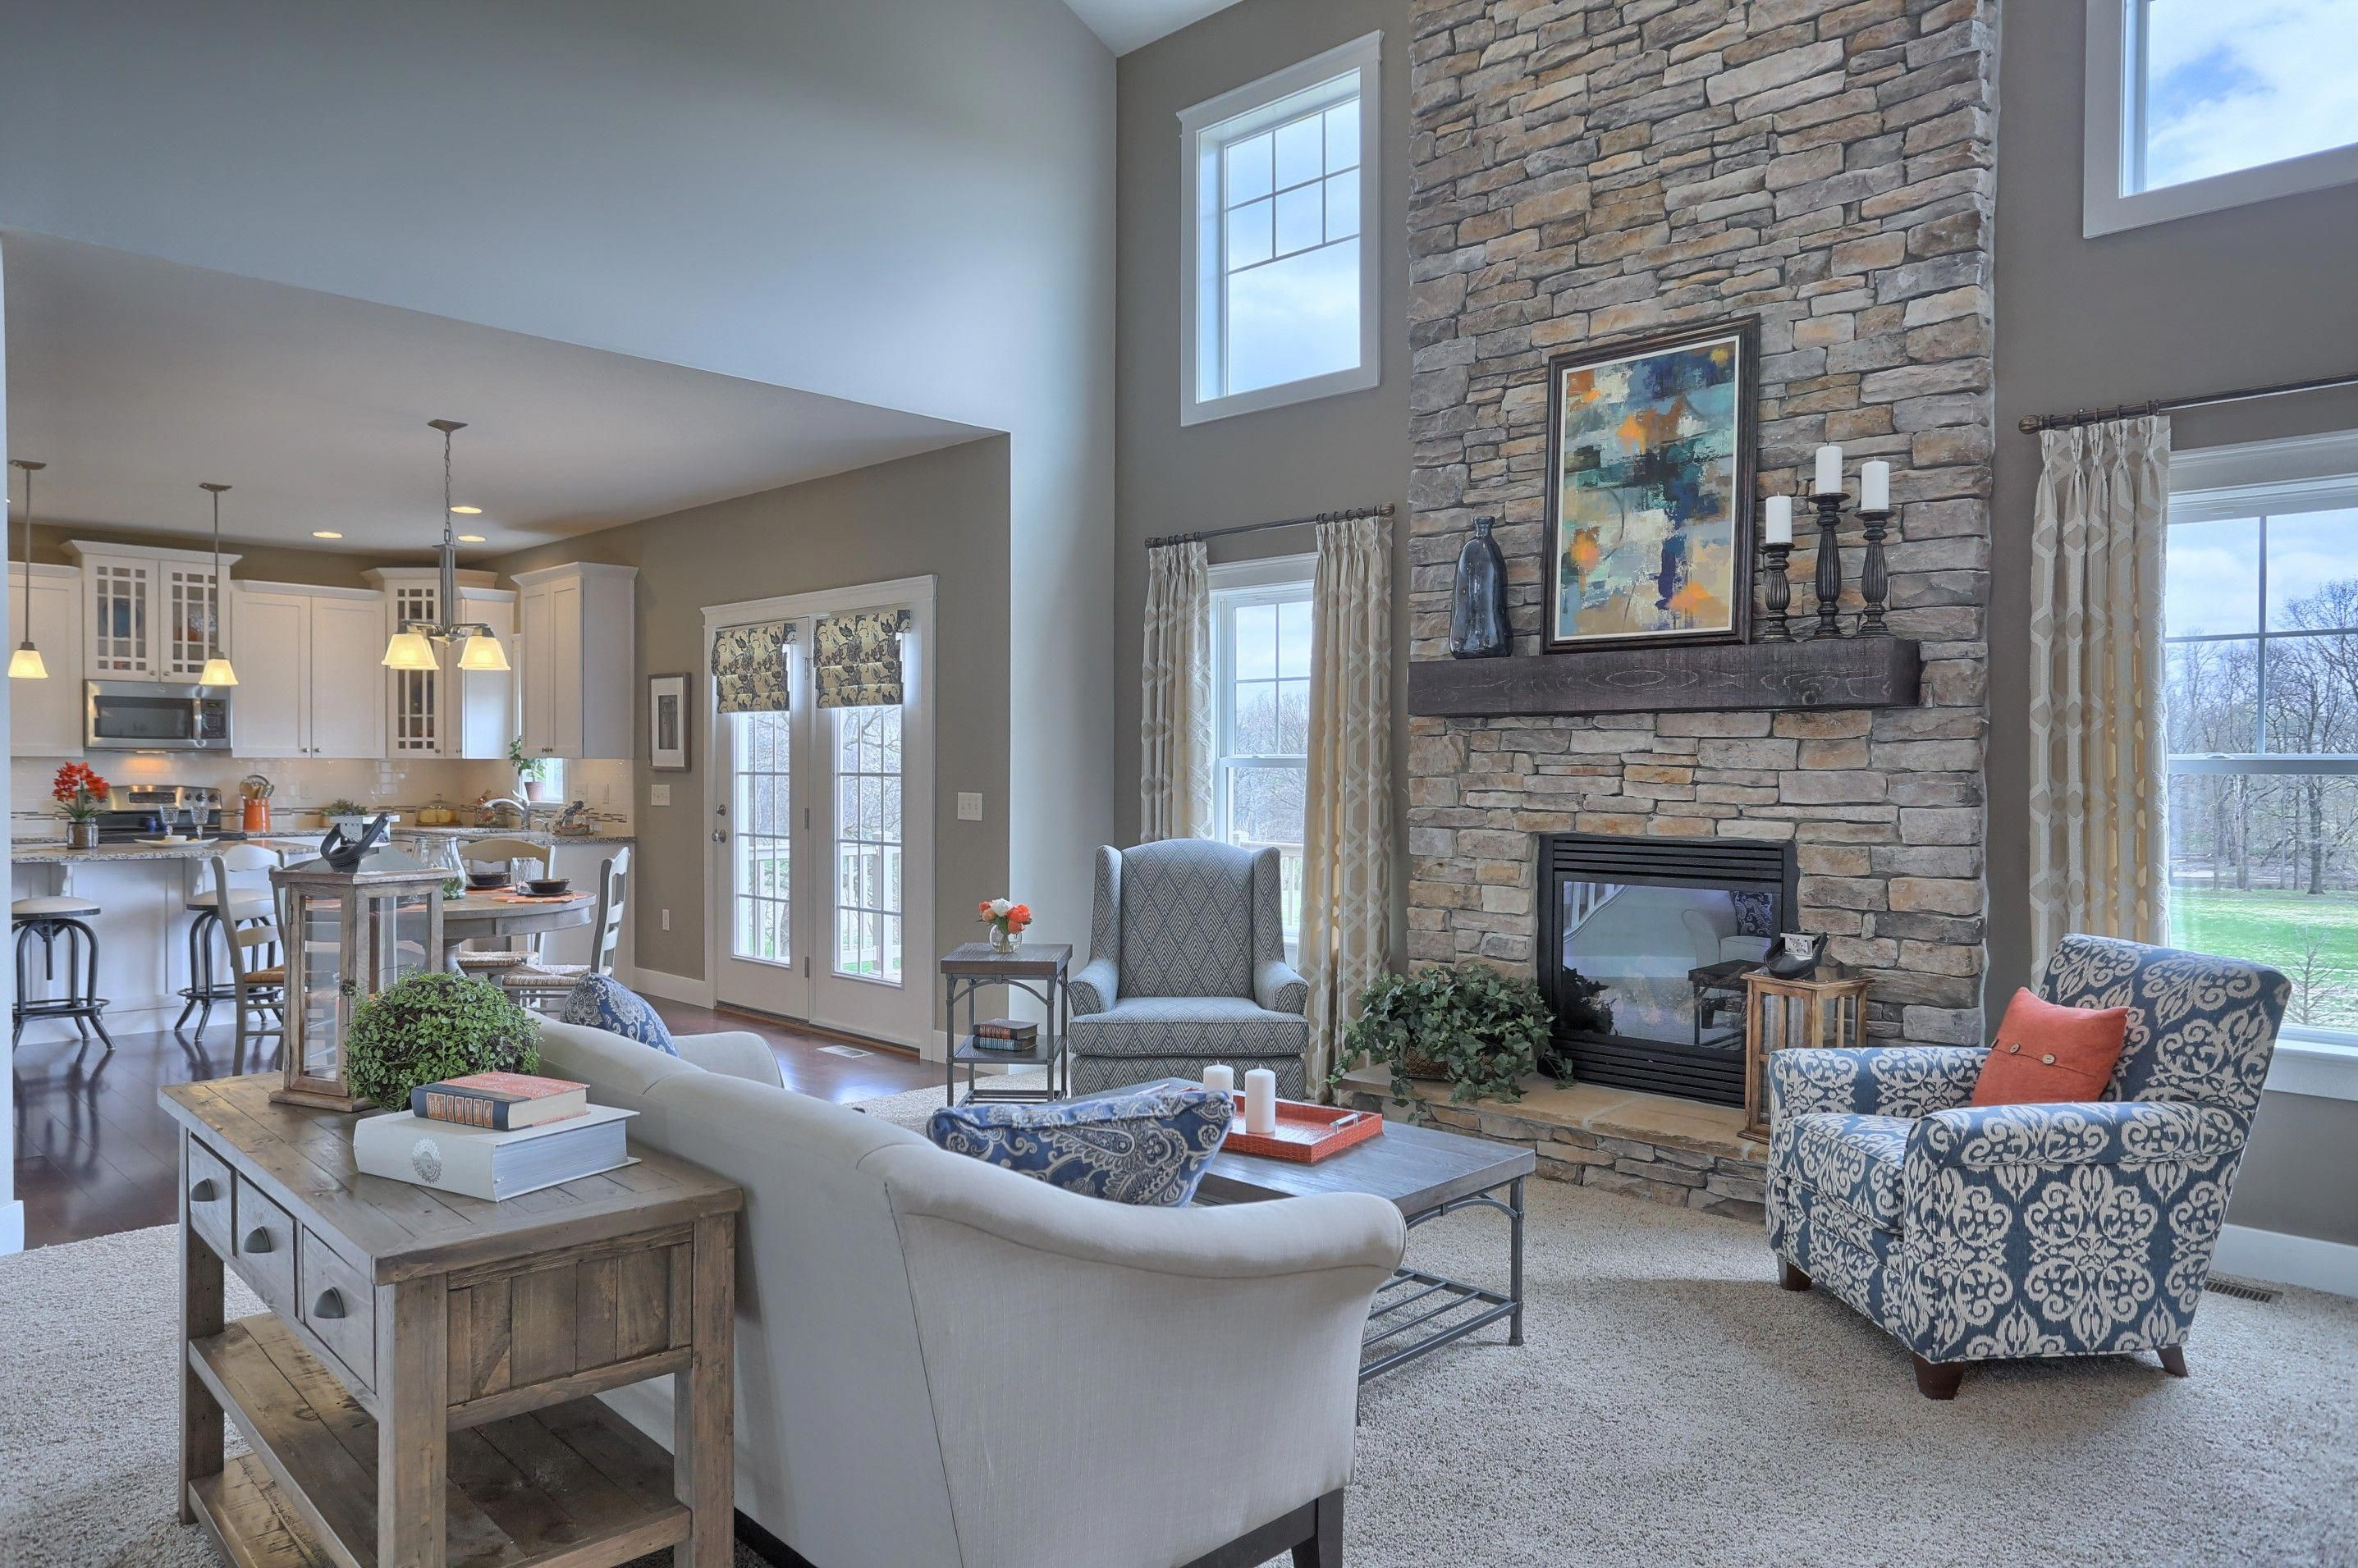 Great Room With 2 Story Ceiling Gas Fireplace With Stone Surround And Raised Hearth Ownalandmark Pr Living Room Remodel Family Room Design Home Living Room